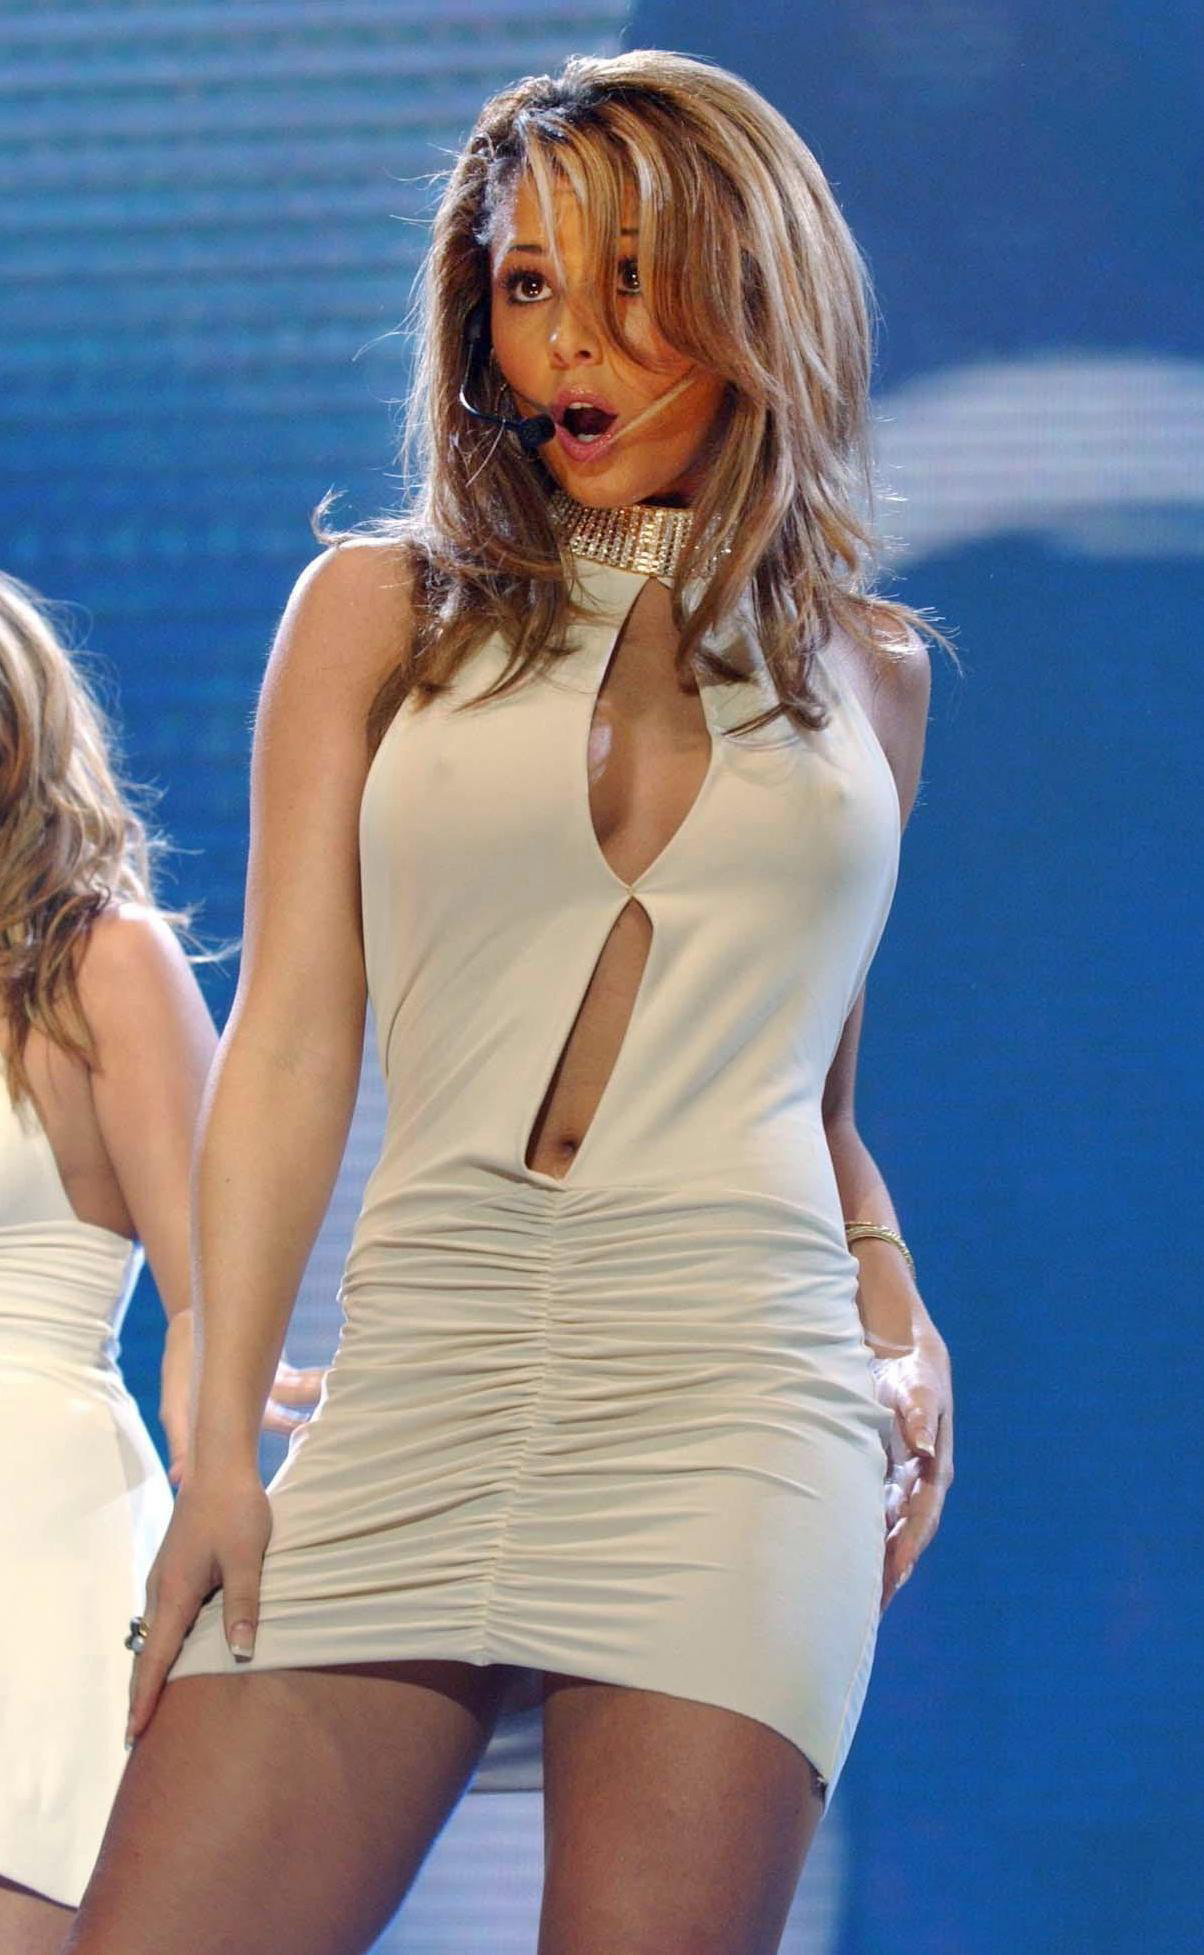 Cheryl Tweedy from Girls Aloud performs live on stage during the Smash Hits T4 Poll Winners party 2004, at Wembley Arena in north London